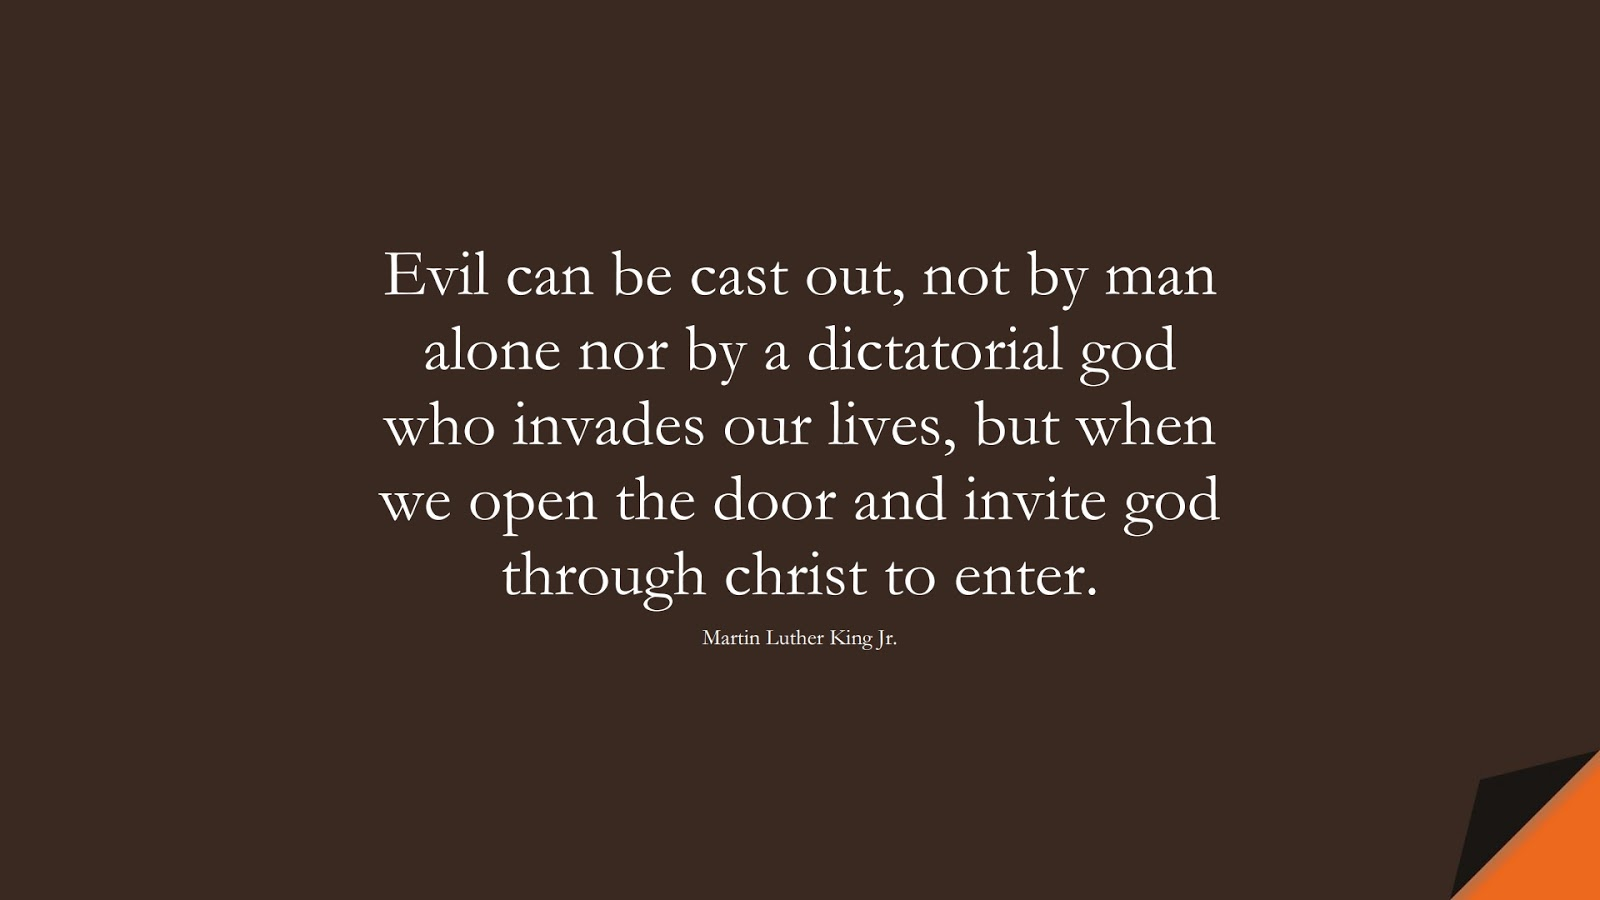 Evil can be cast out, not by man alone nor by a dictatorial god who invades our lives, but when we open the door and invite god through christ to enter. (Martin Luther King Jr.);  #MartinLutherKingJrQuotes